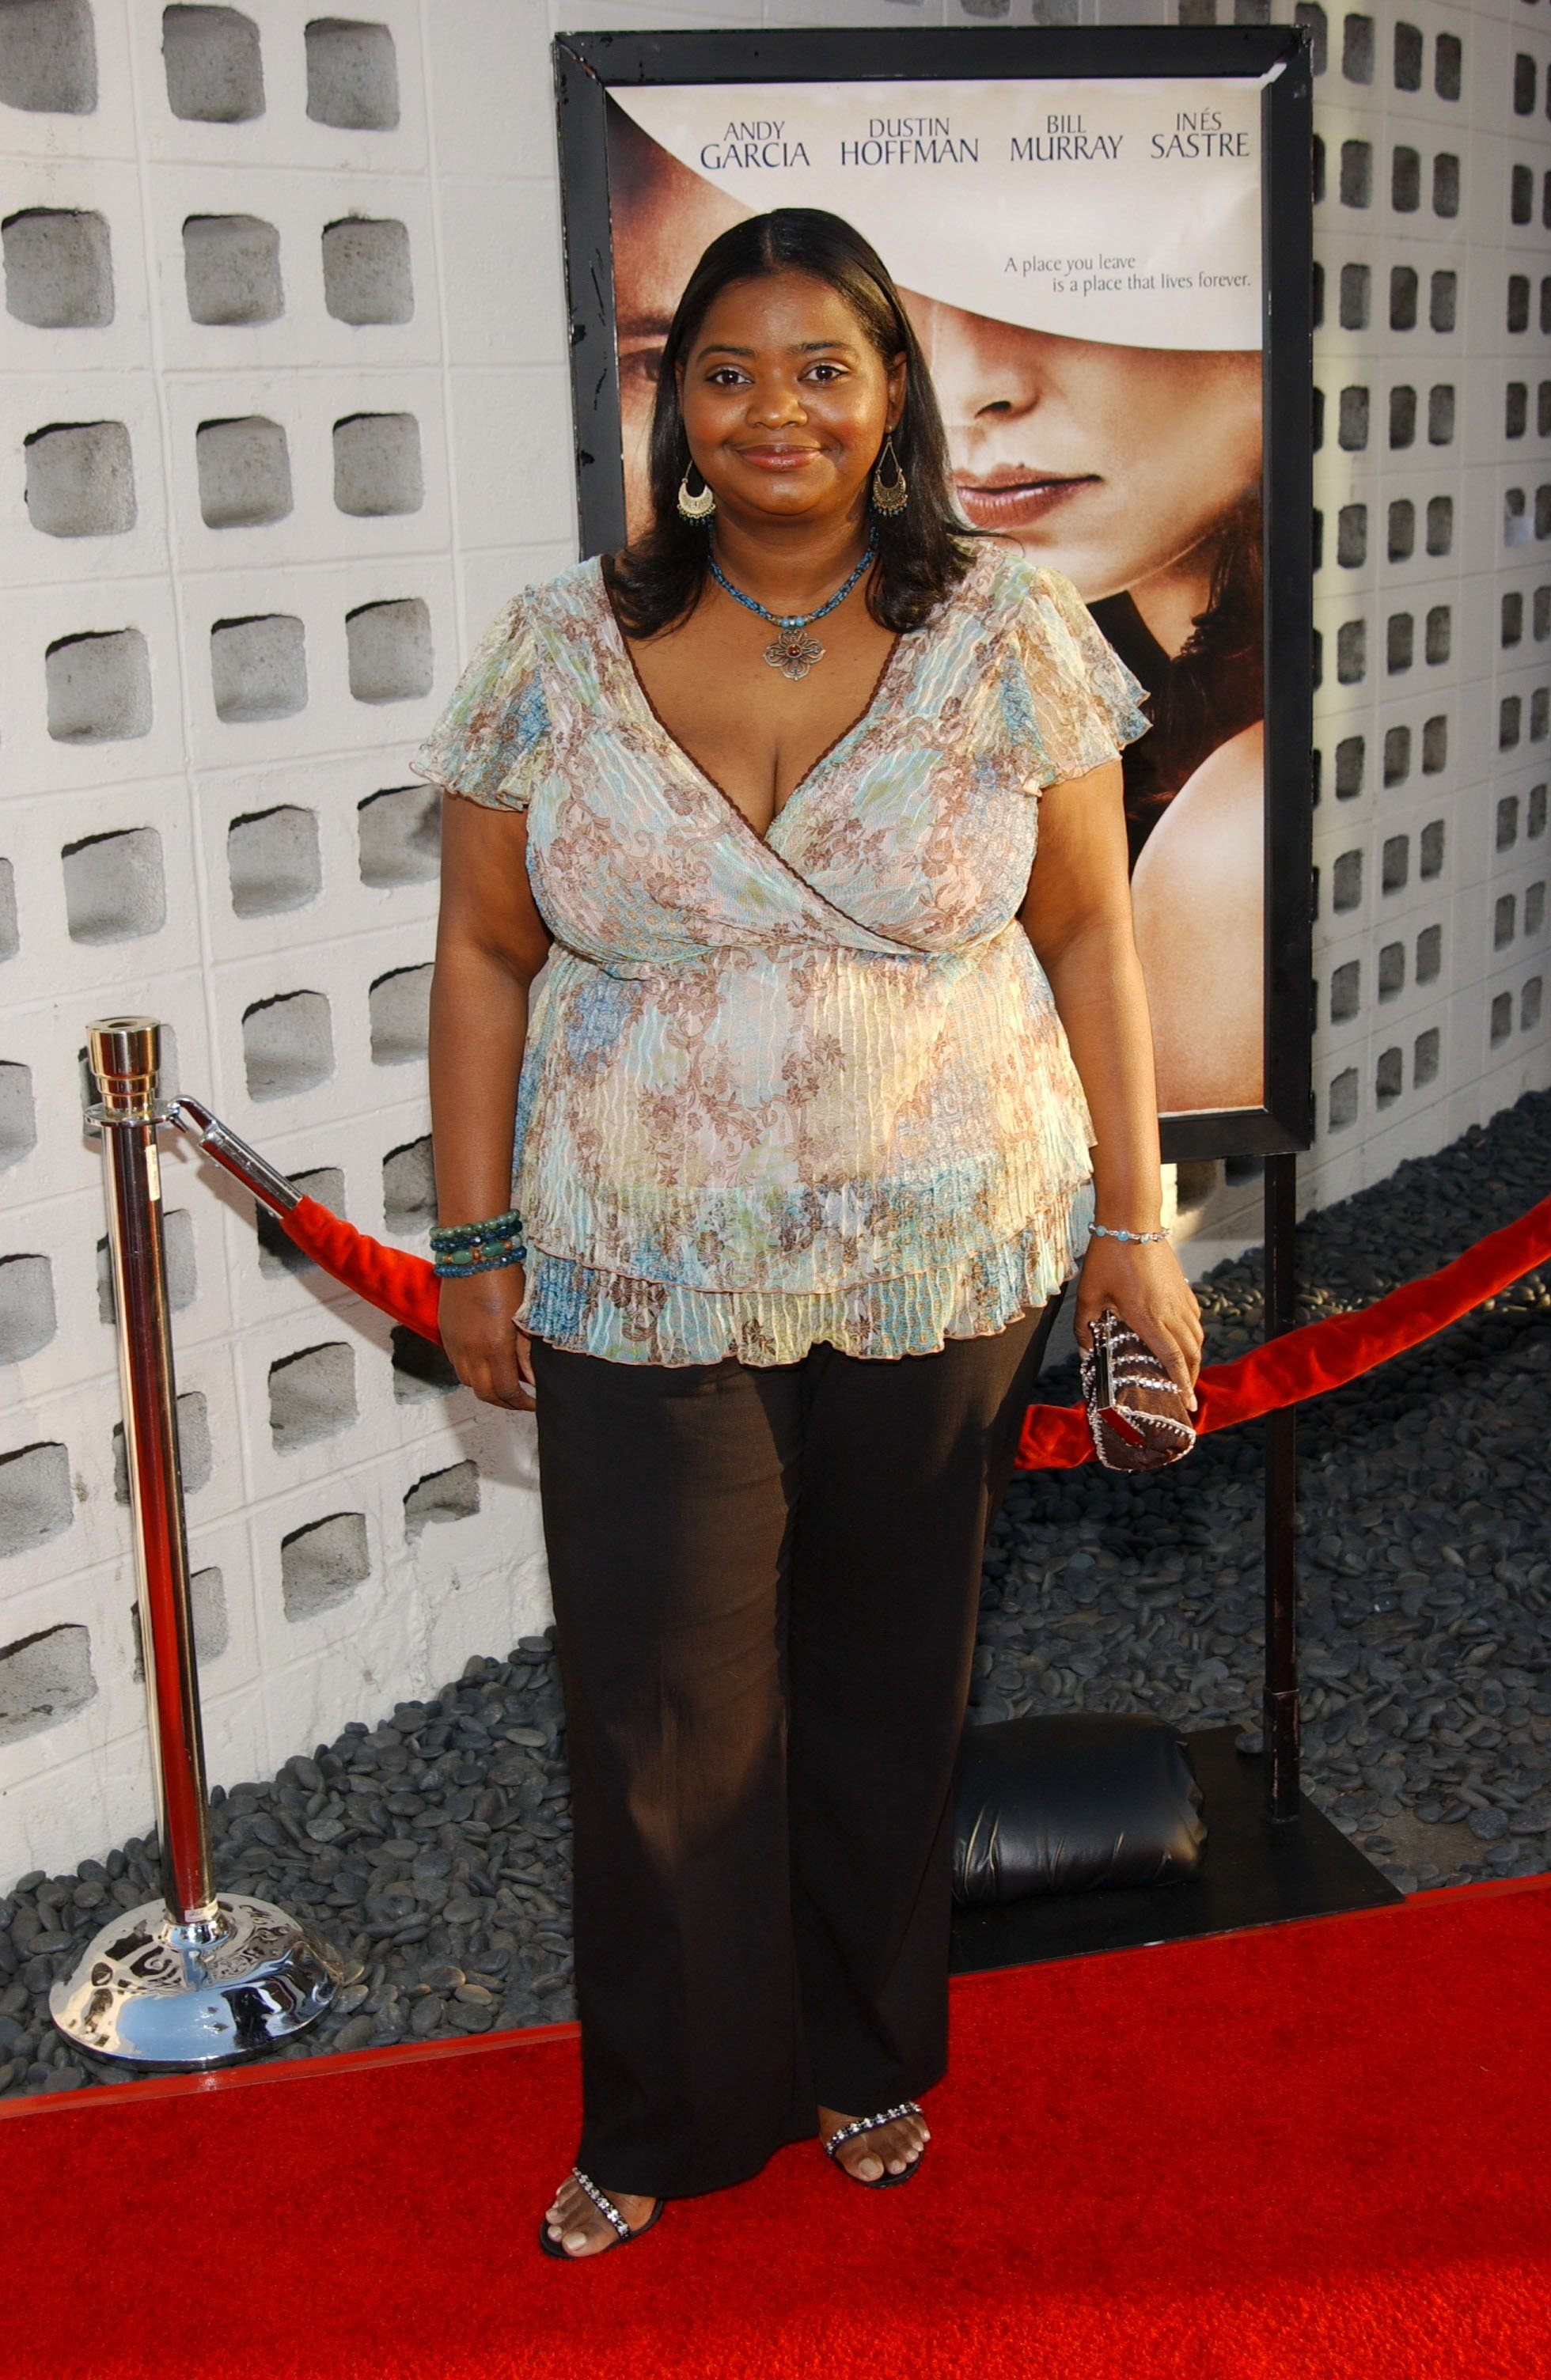 """Octavia Spencer at """"The Lost City"""" film premiere in Los Angeles on April 17, 2006."""